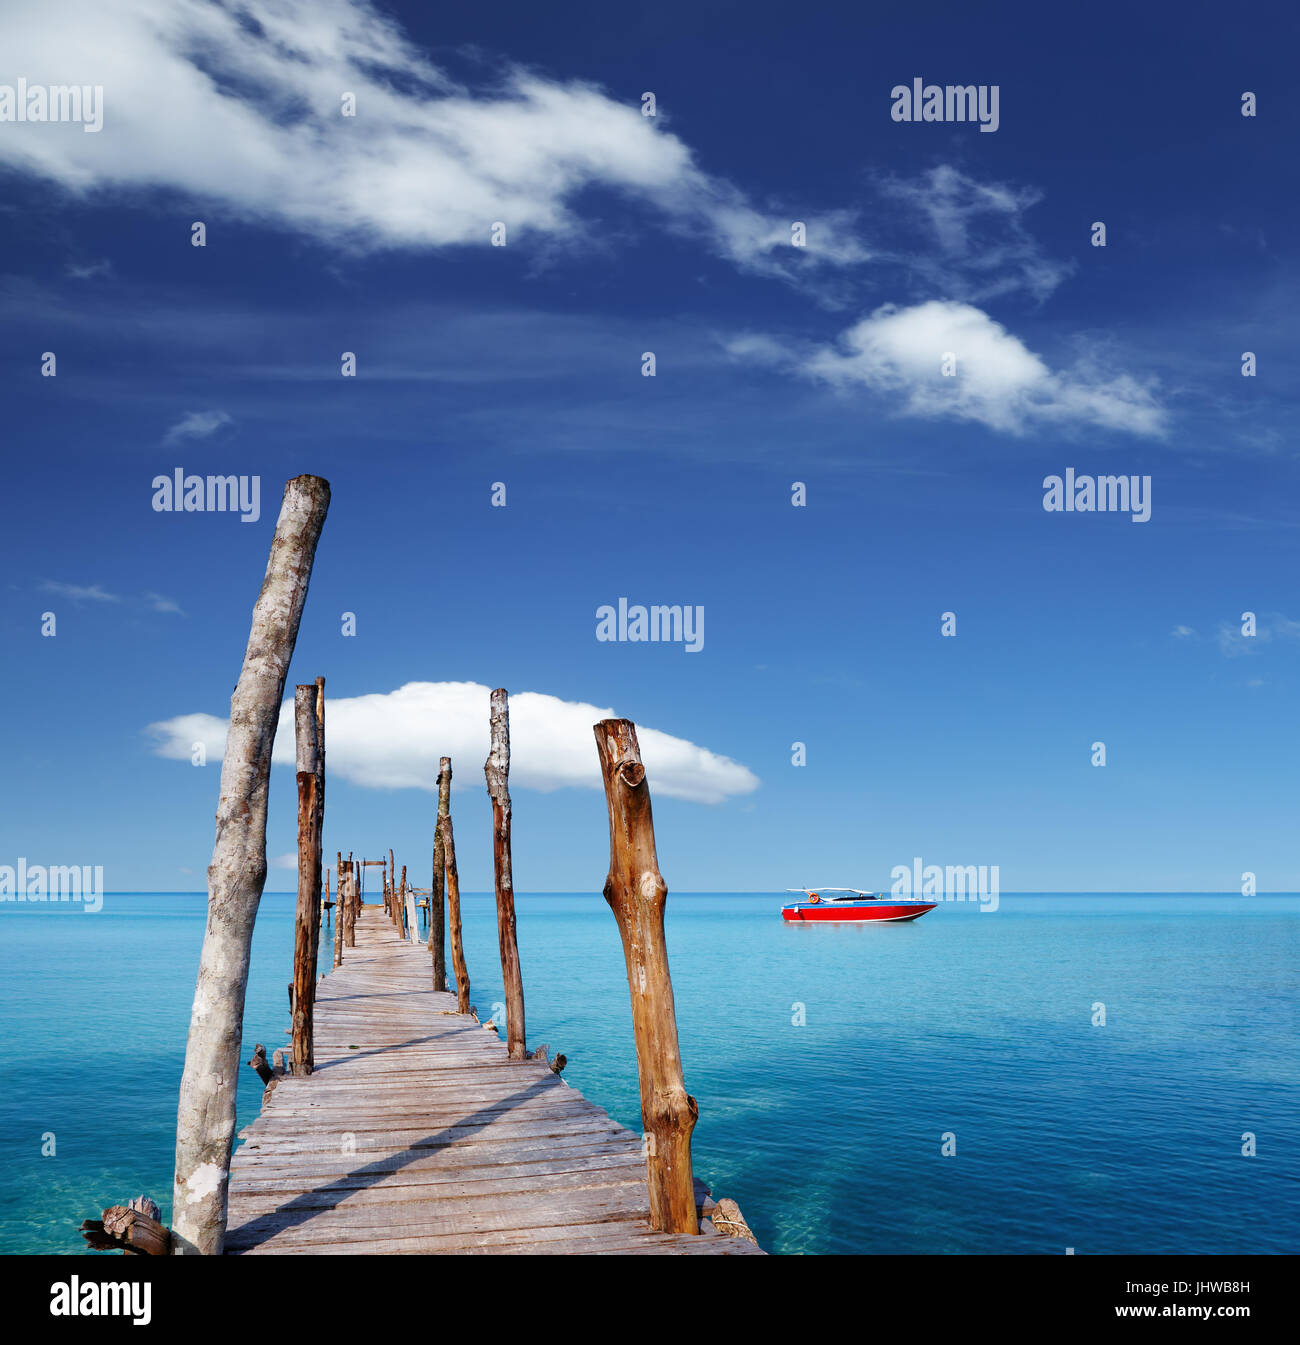 Wooden pier on a tropical island, sea and blue sky - Stock Image